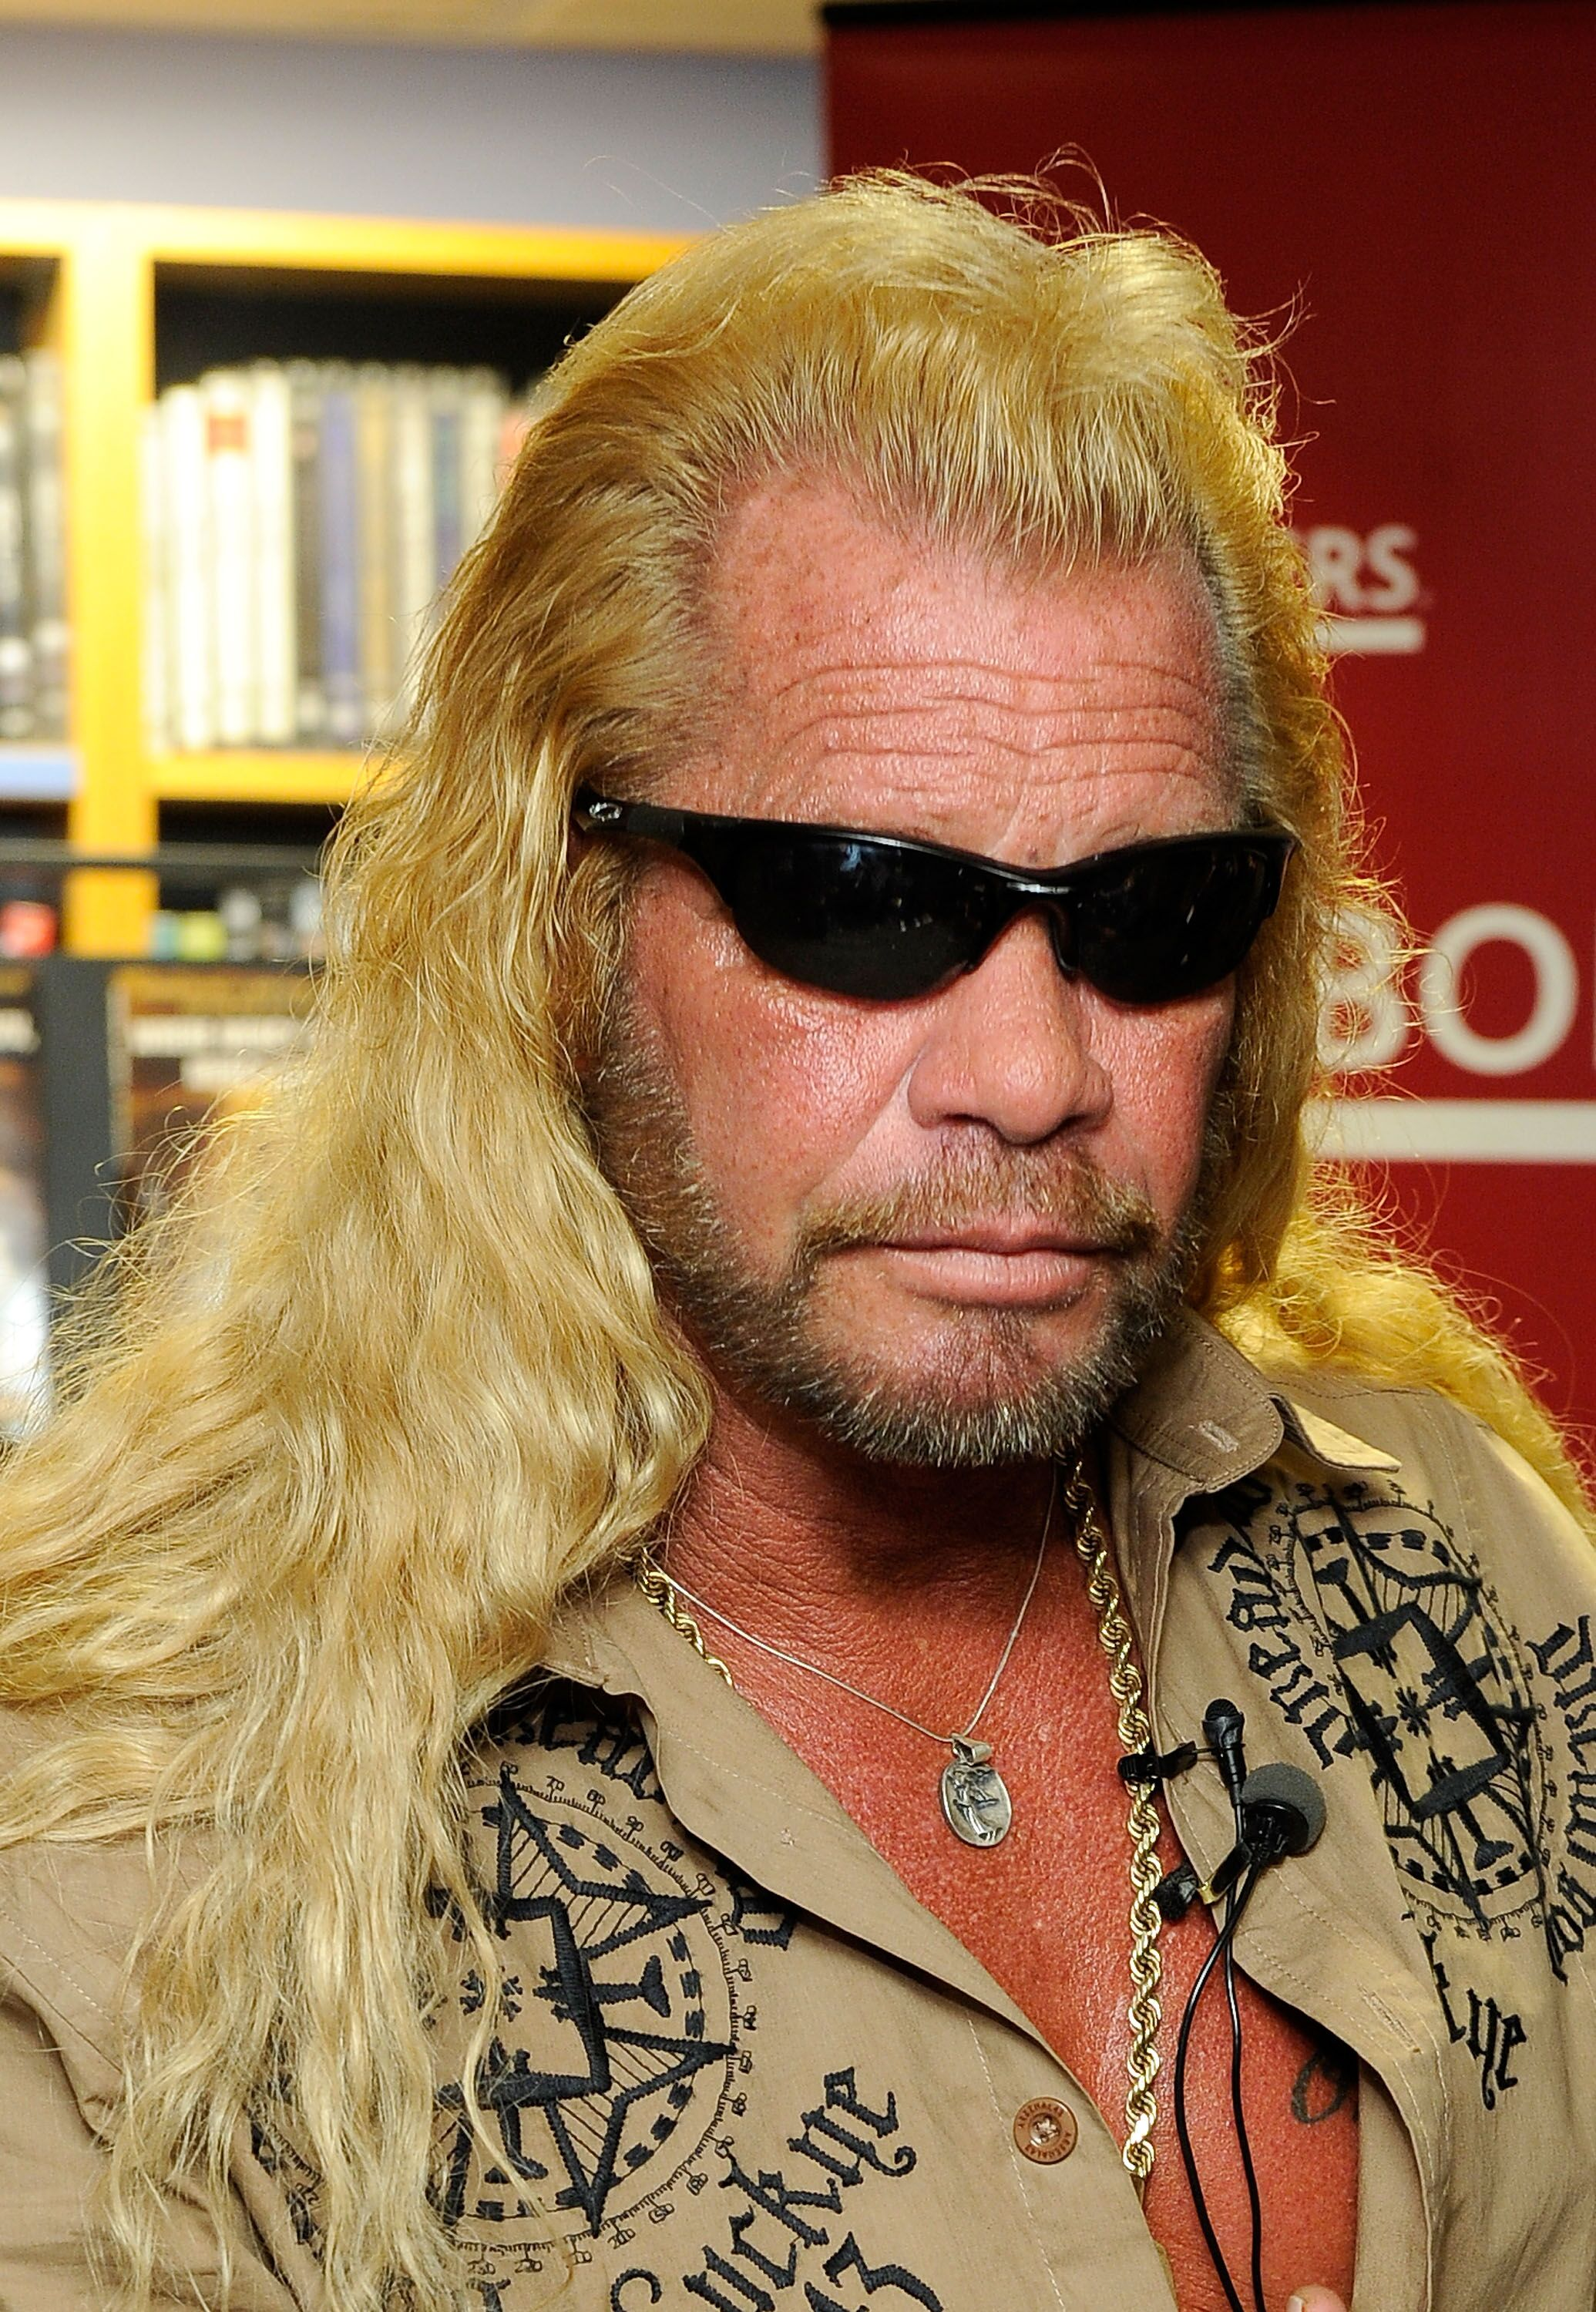 """Duane Chapman promotes his book """"When Mercy Is Shown, Mercy Is Given"""" at Borders Wall Street on March 19, 2010 in New York City 